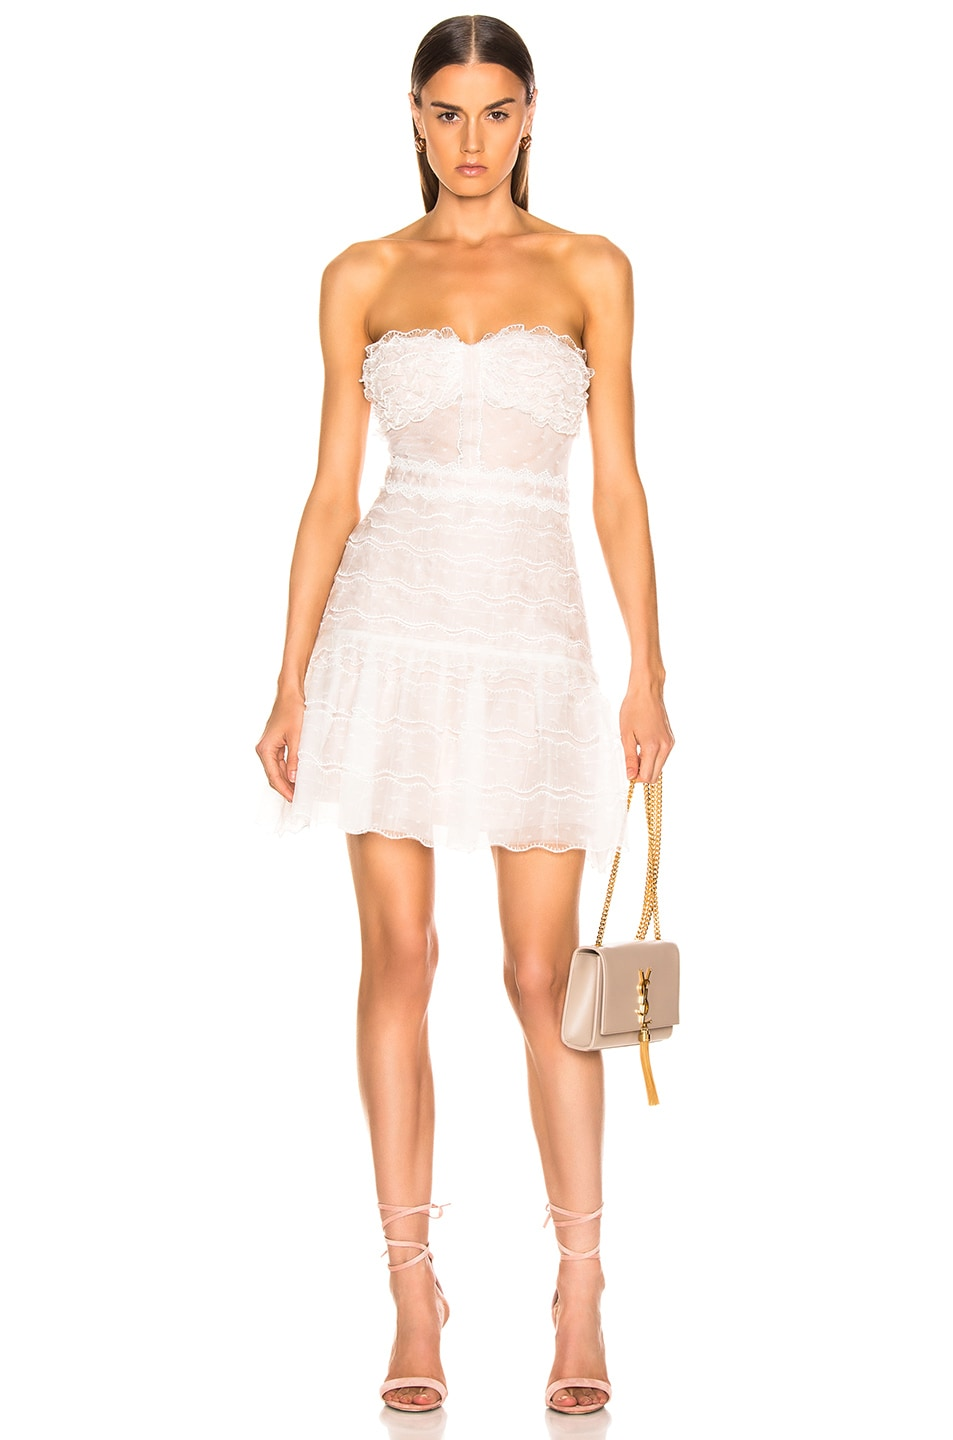 Image 1 of Alexis Adlai Dress in White